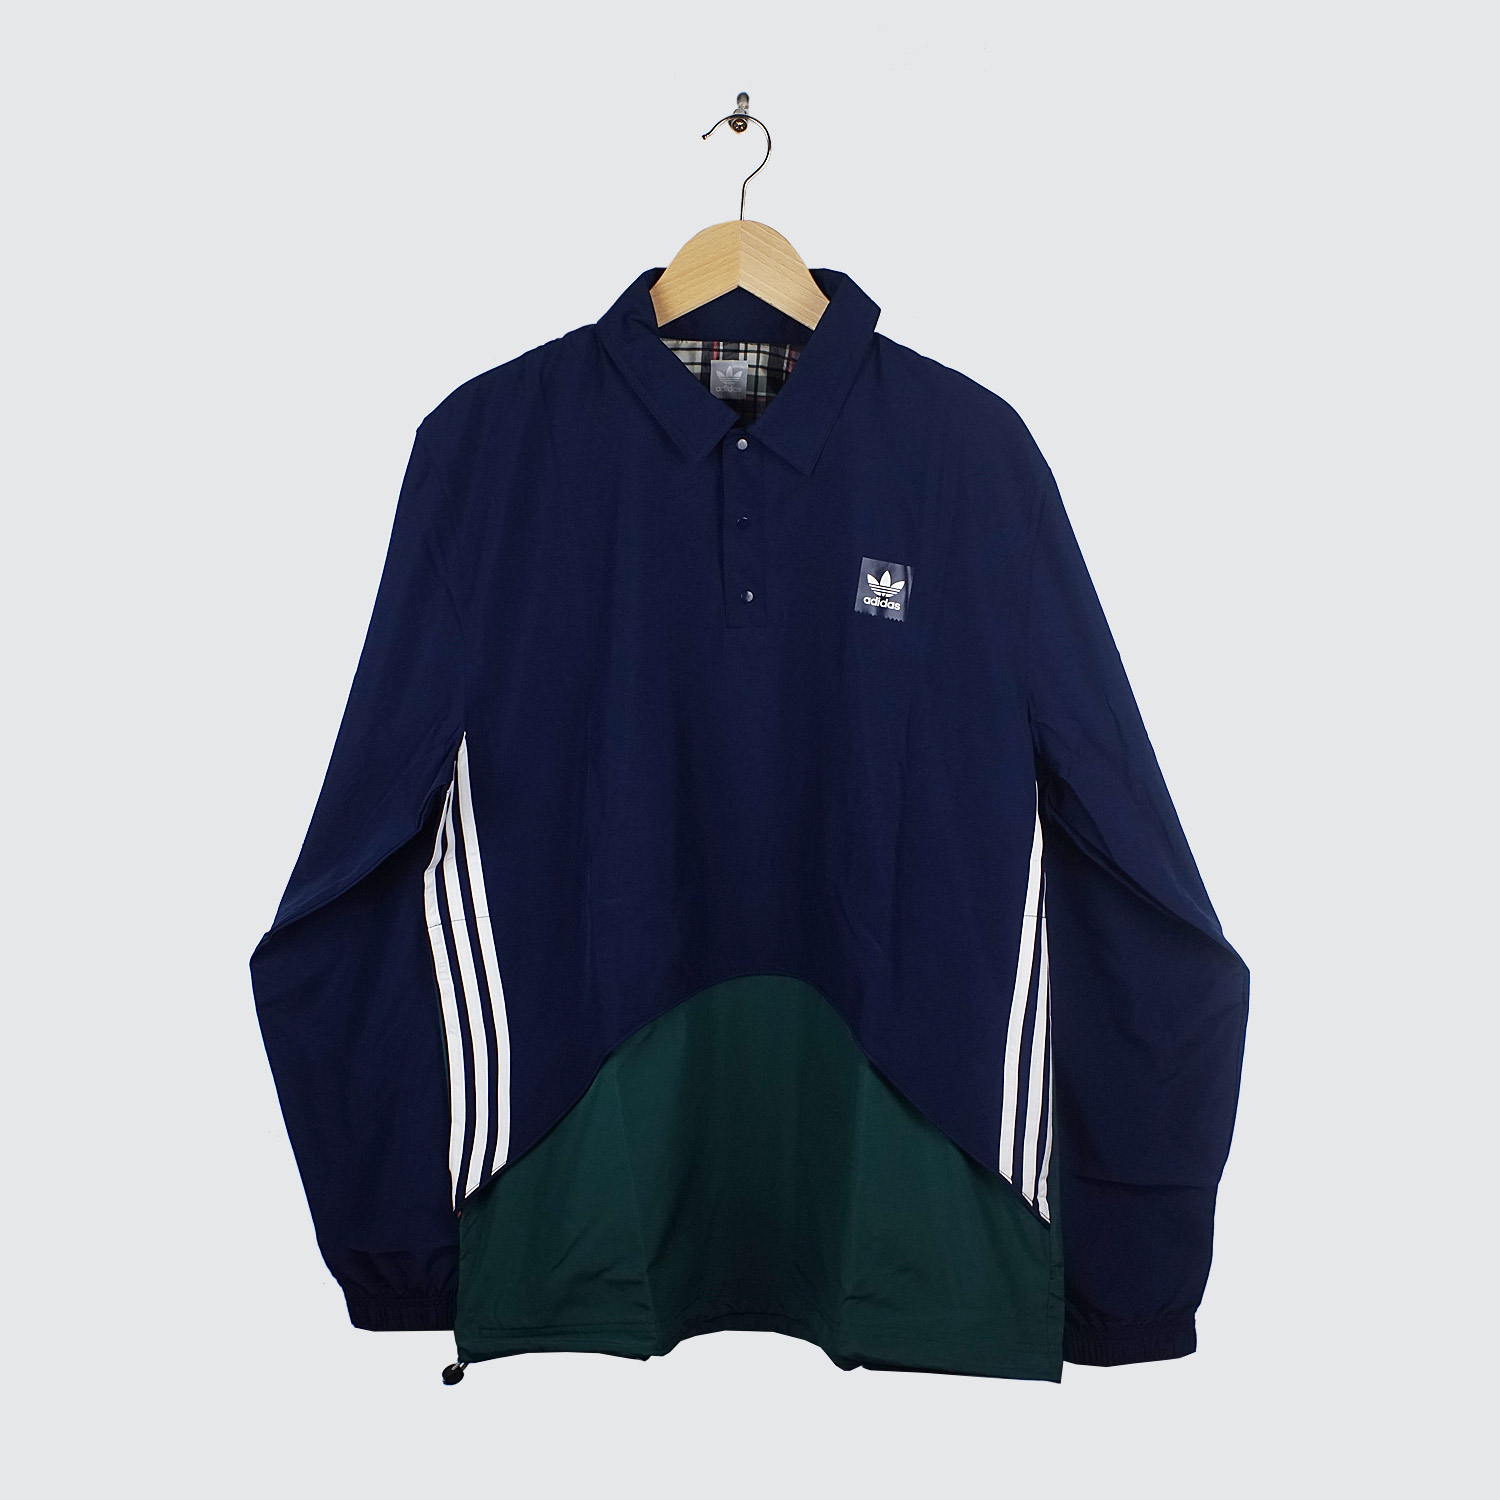 adidas pullover jacket indigo green lobby. Black Bedroom Furniture Sets. Home Design Ideas